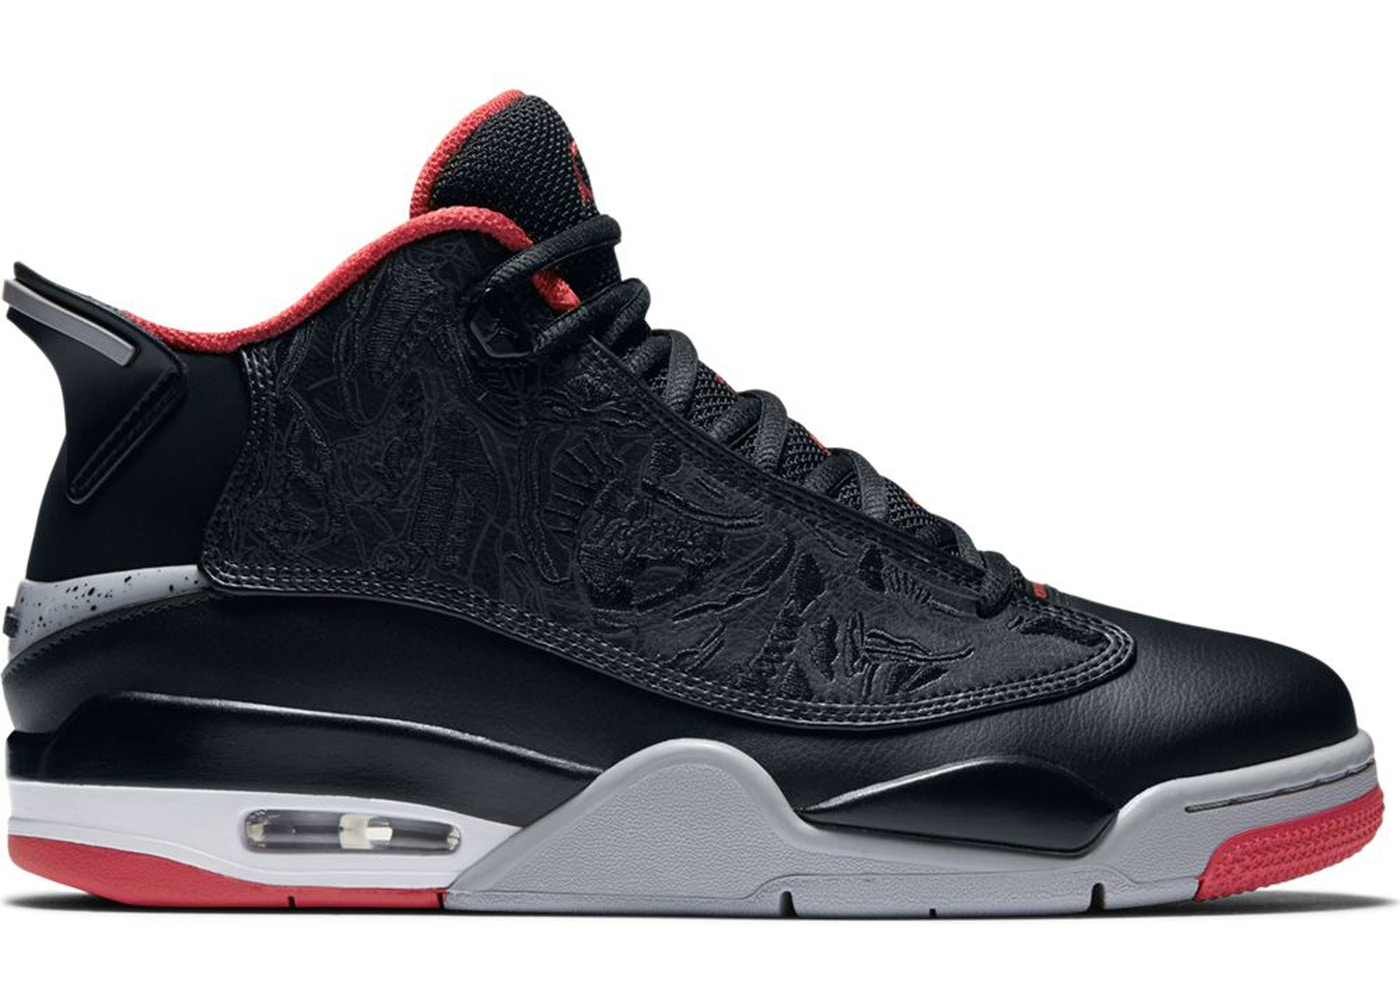 official photos 634a8 ea0b1 Sell. or Ask. Size --. View All Bids. Jordan Dub Zero Black Cement ...